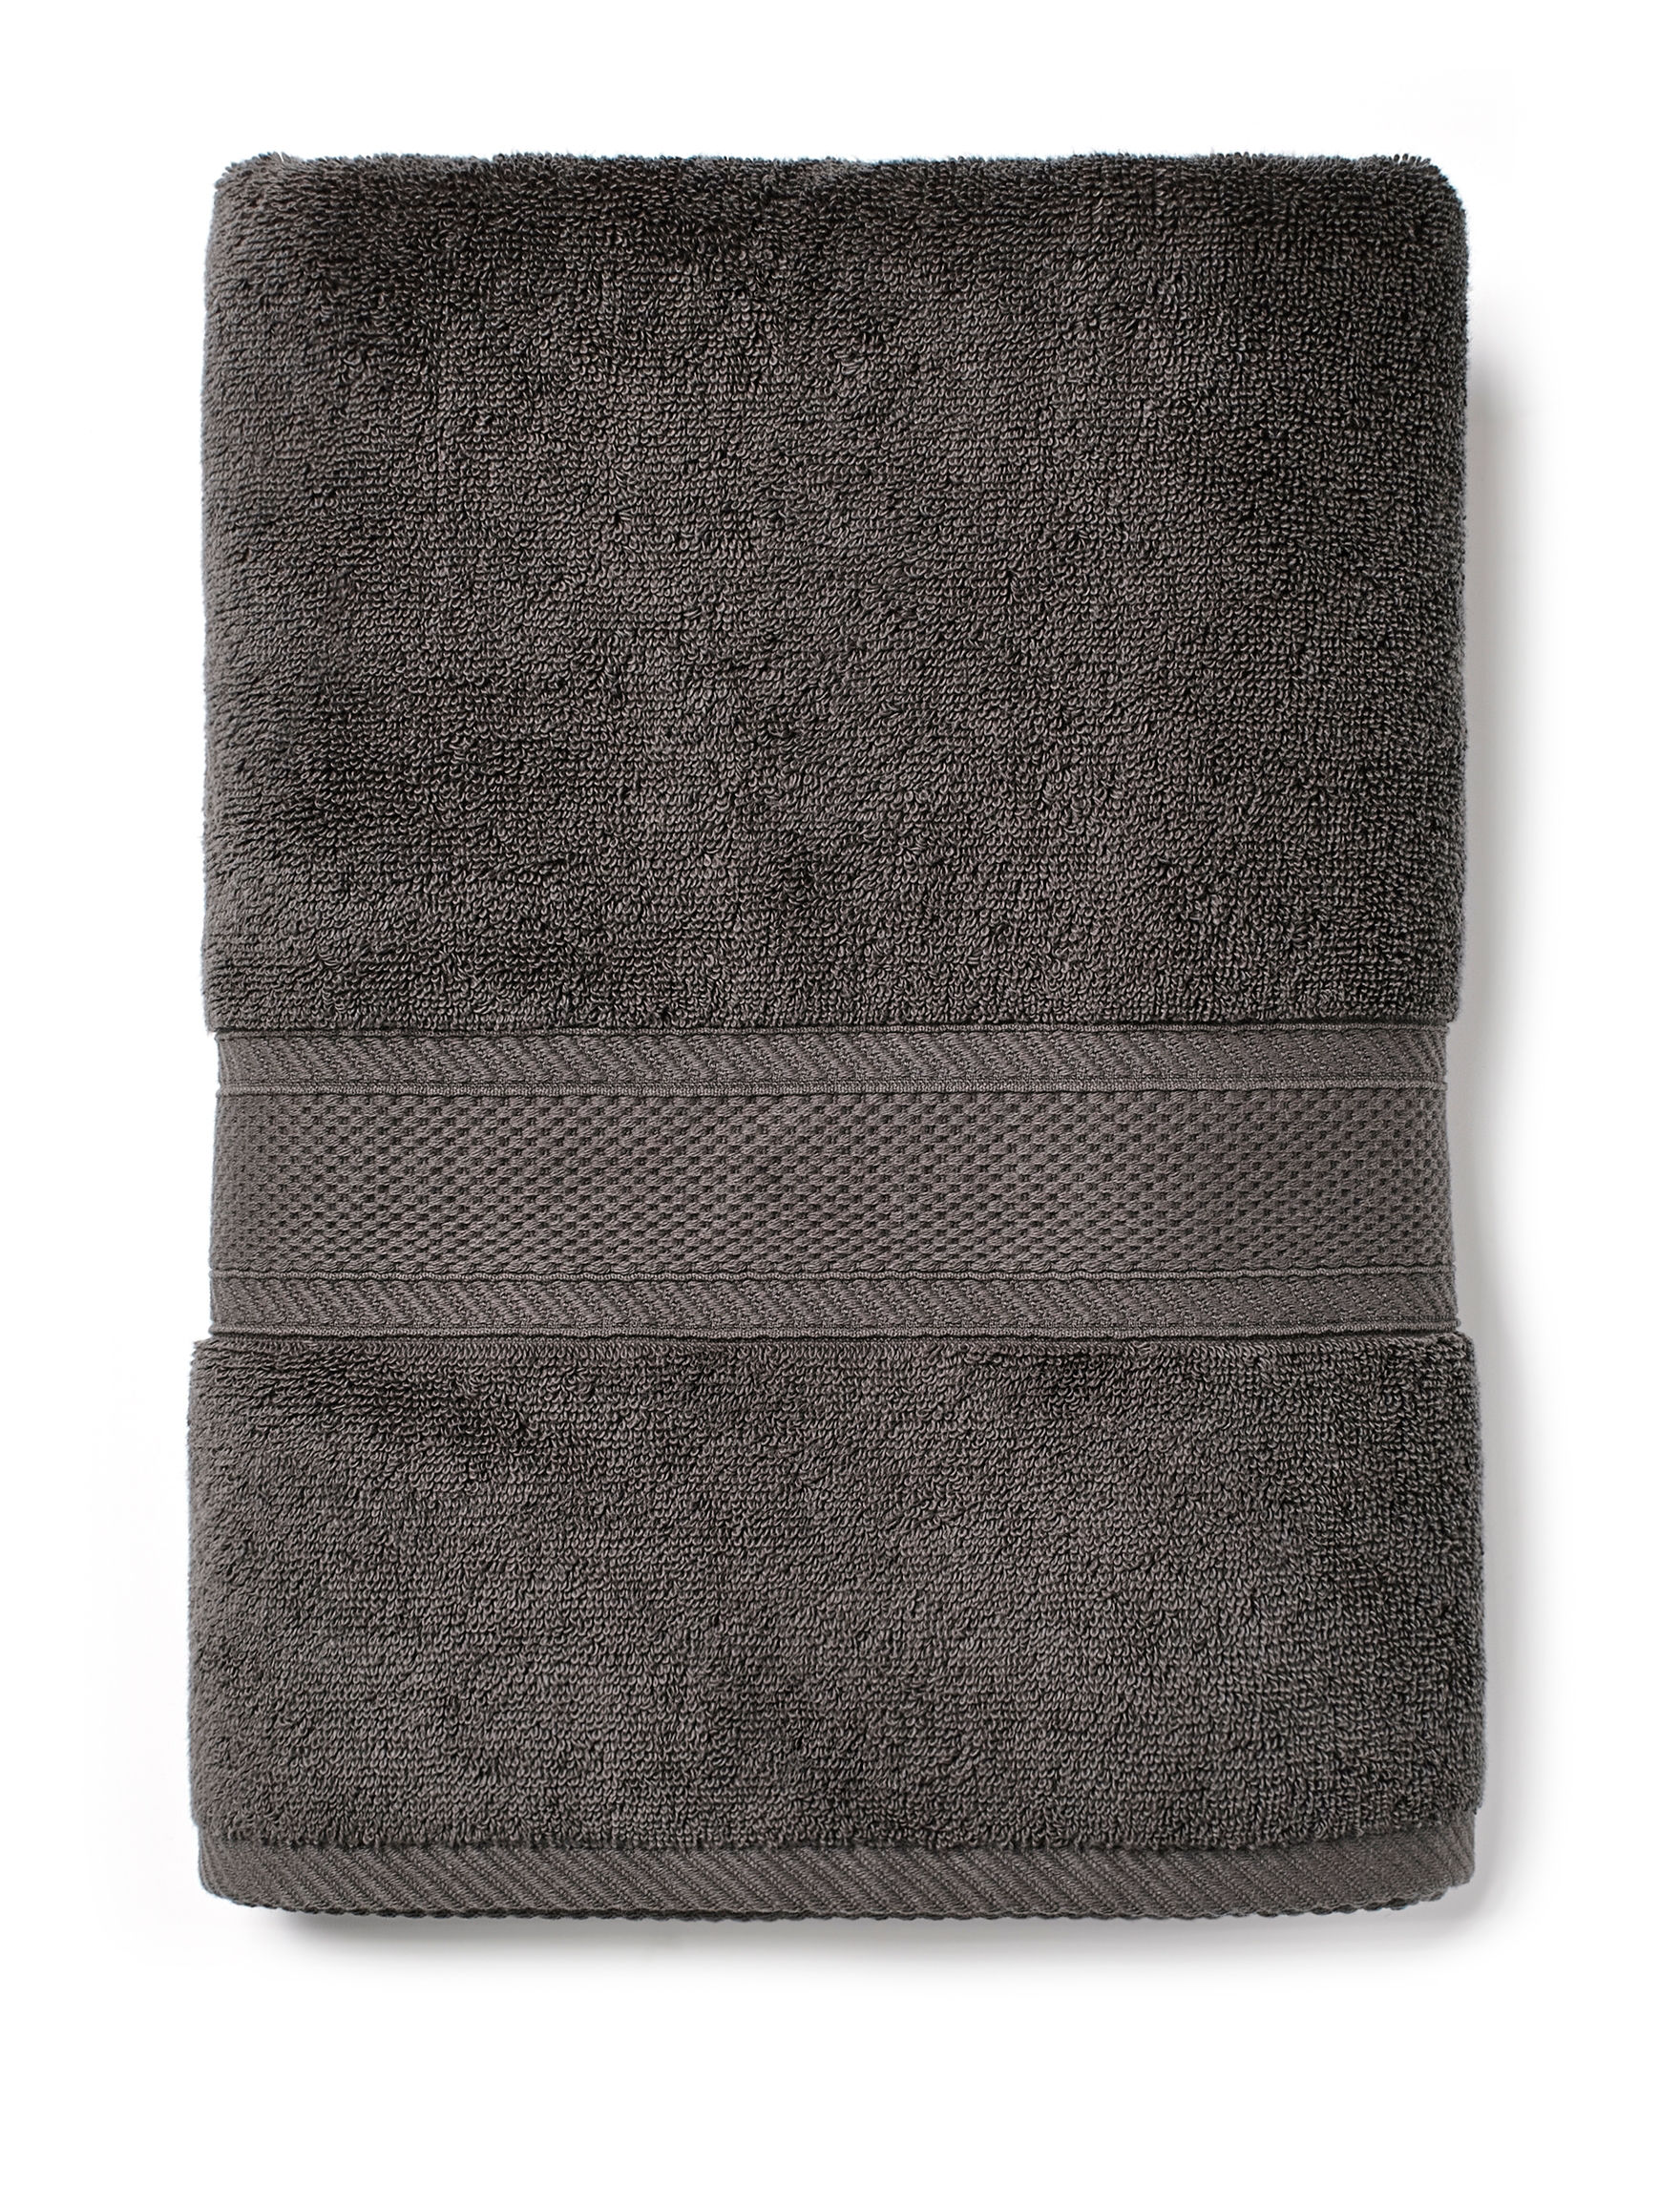 Great Hotels Collection Graphite Bath Towels Towels